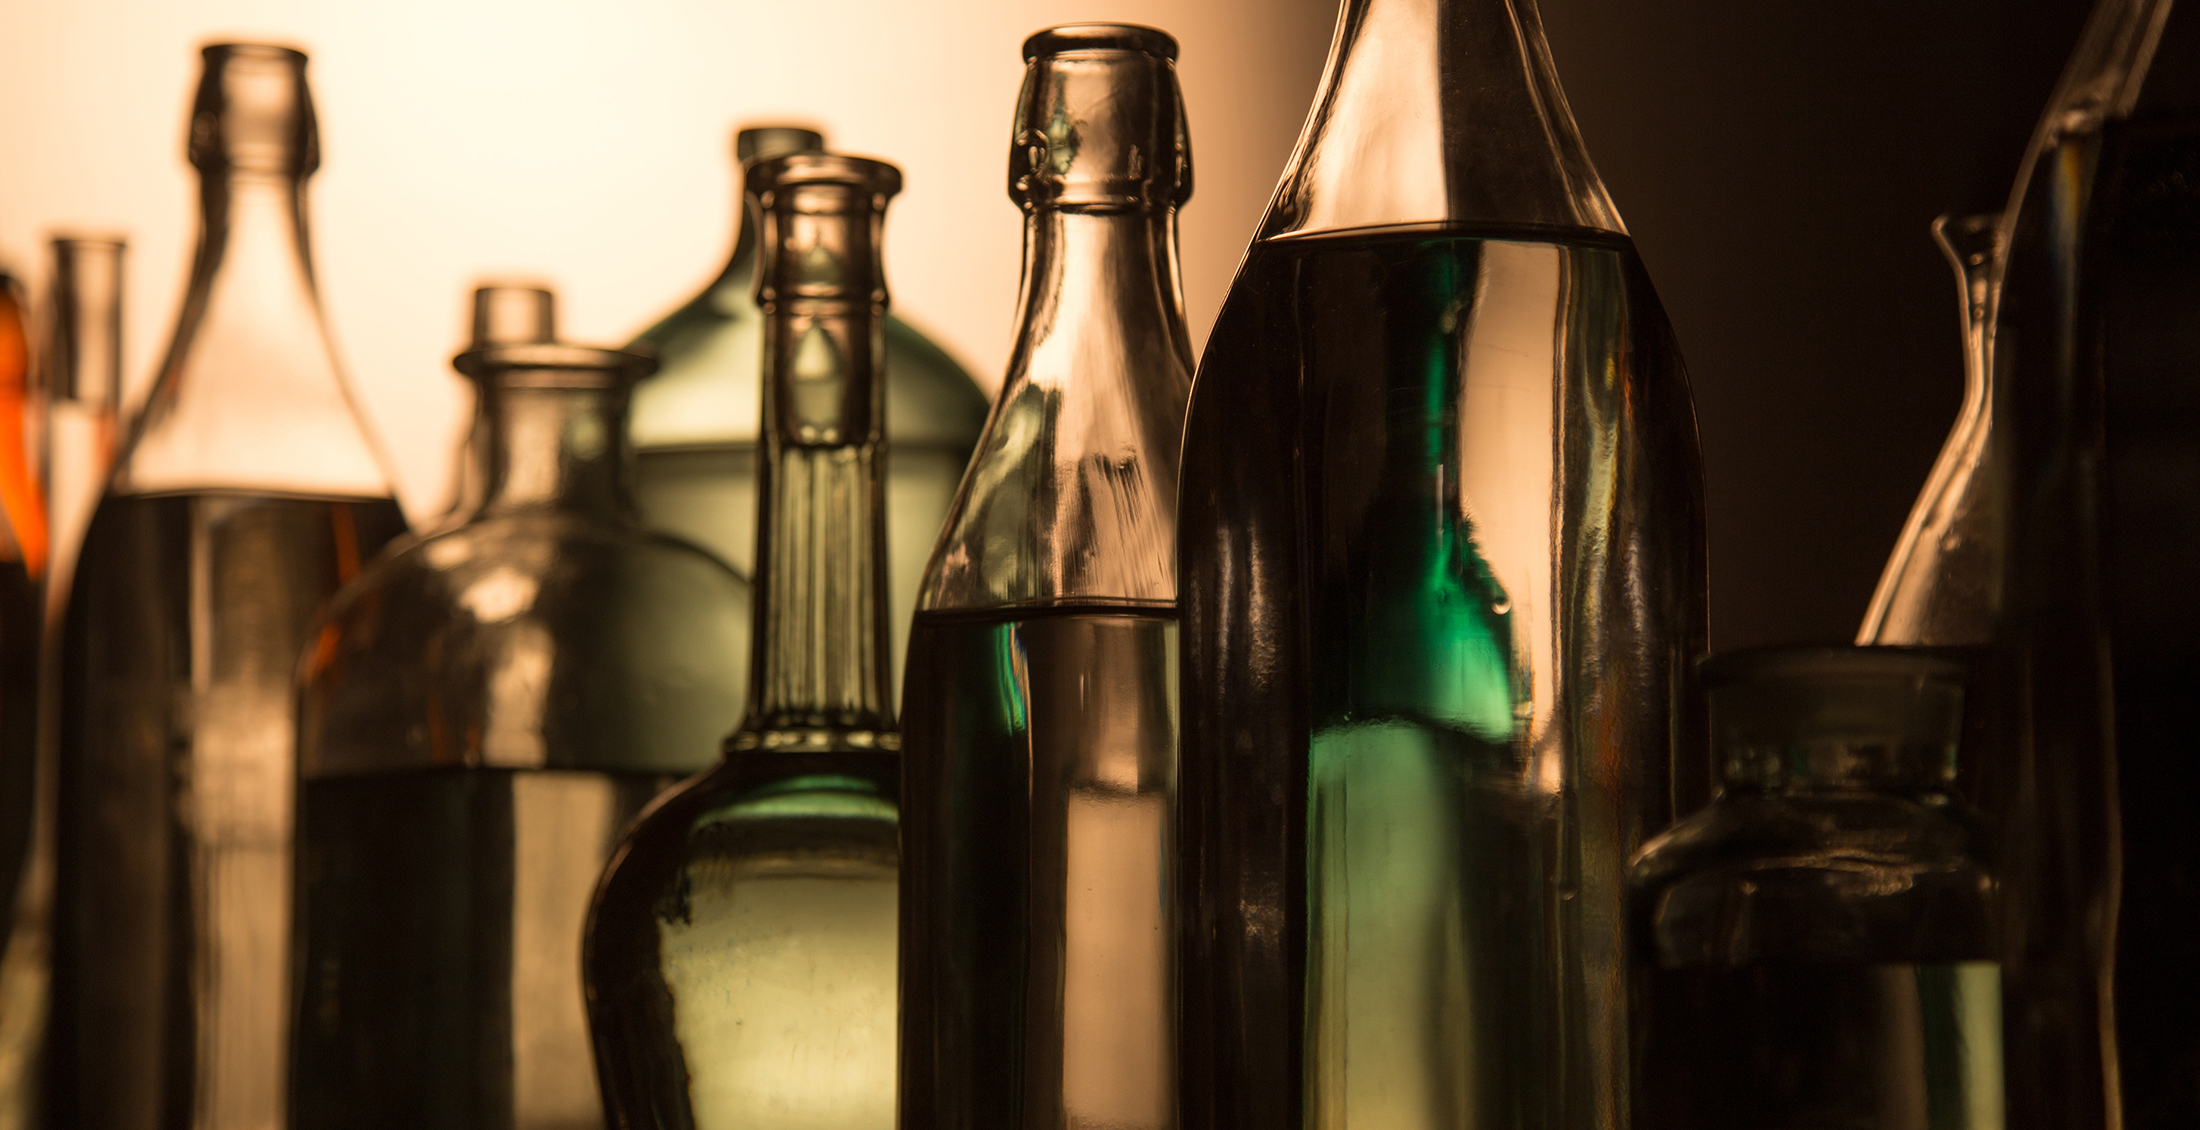 Storing and preserving rum